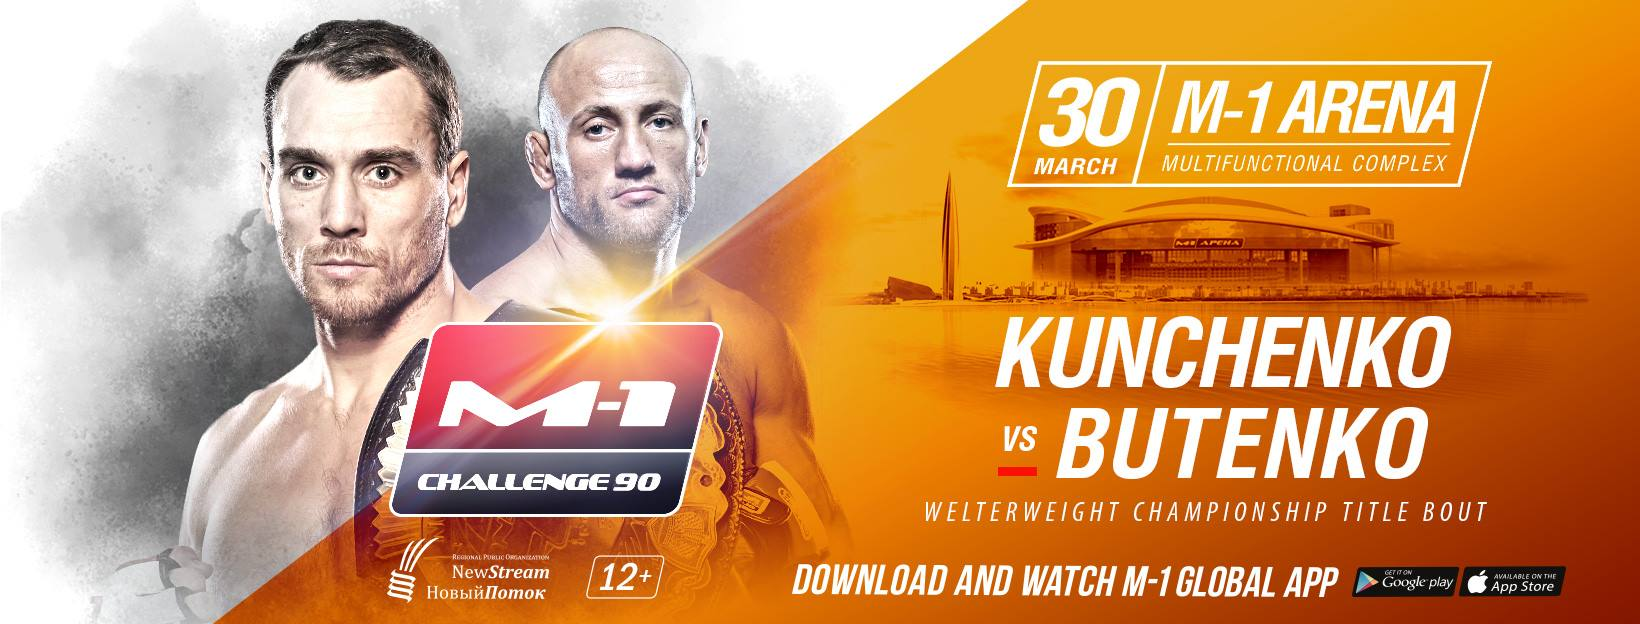 M-1 Challenge 90 - Official Stream - FREE Prelims - Main Card PPV